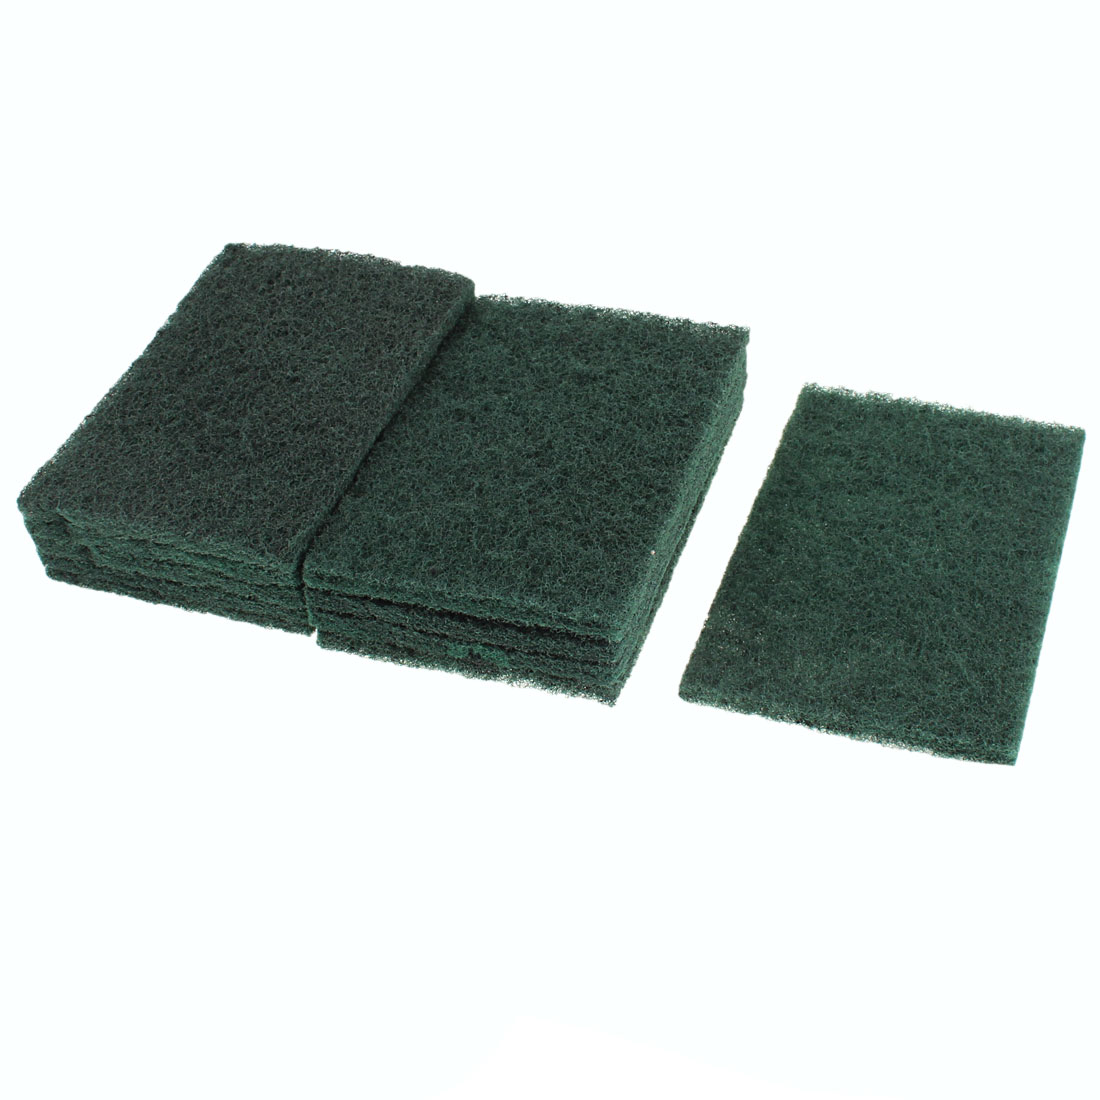 Home Sponge Bowl Dish Wash Cleaning Pad 147mm x 100mm Amy Green 10pcs